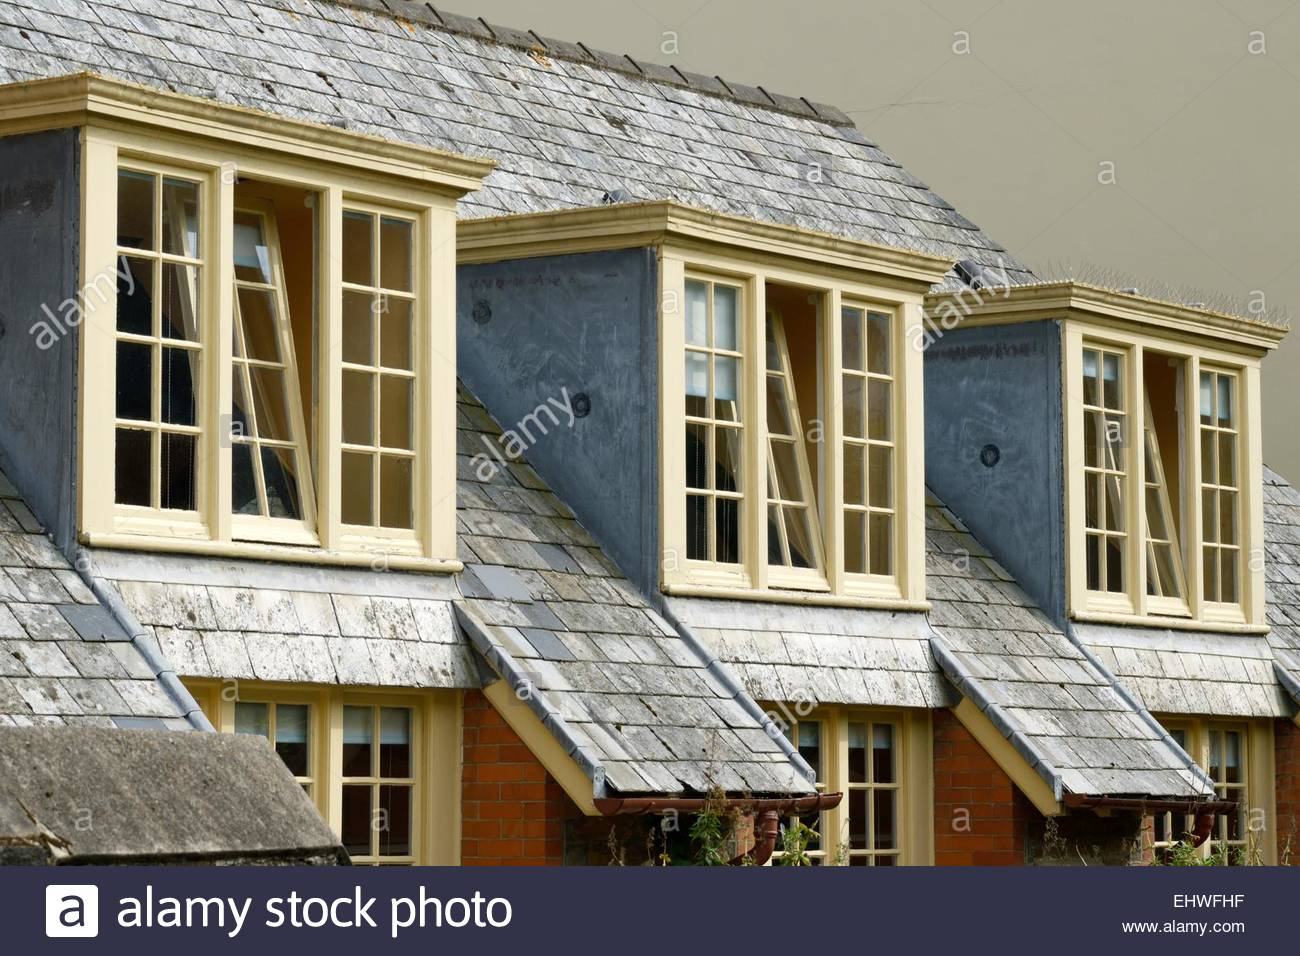 Close Up Of A Row Of 3 Flat Roof Dormers With A Bottom Opening Window In  The Centre Of Each One.